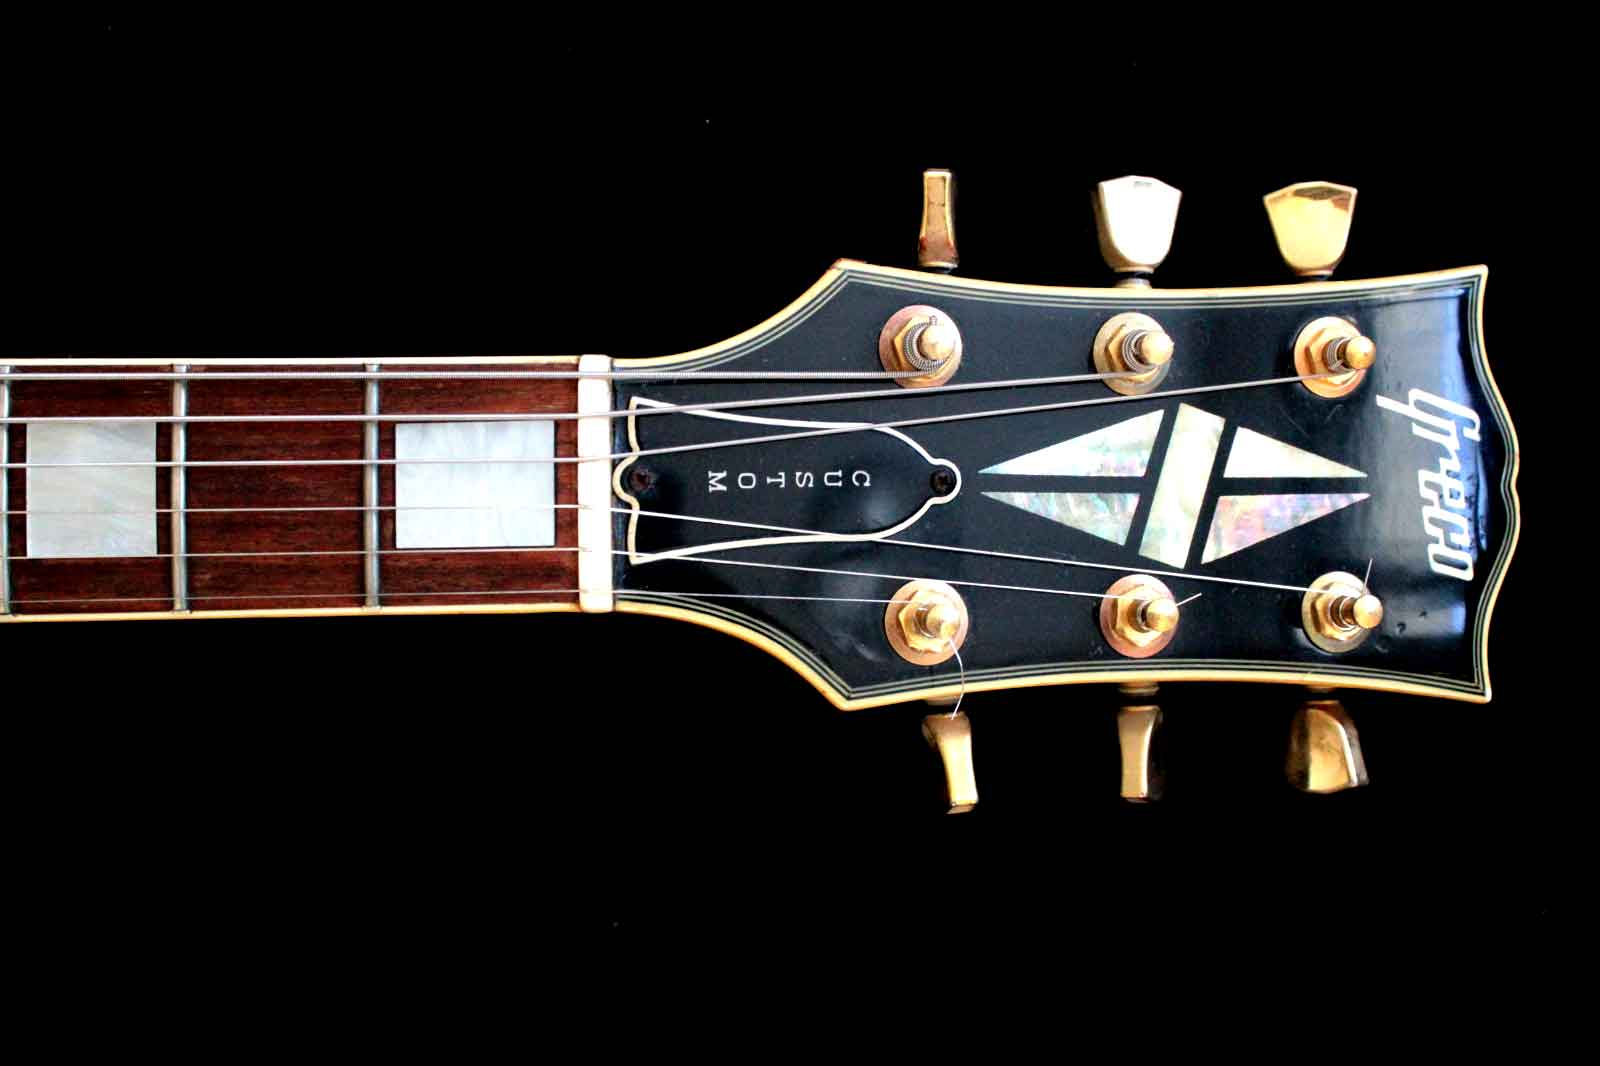 Pretty Ibanez 5 Way Switch Thin Jbs Technologies Remote Starter Flat Bulldog Security Remote Starter With Keyless Entry Remote Start Wiring Old Dimarzio Dp100 Wiring Purple2 Humbuckers 5 Way Switch Greco Les Paul Custom 3 Humbuckers Image (#1165377)   Audiofanzine